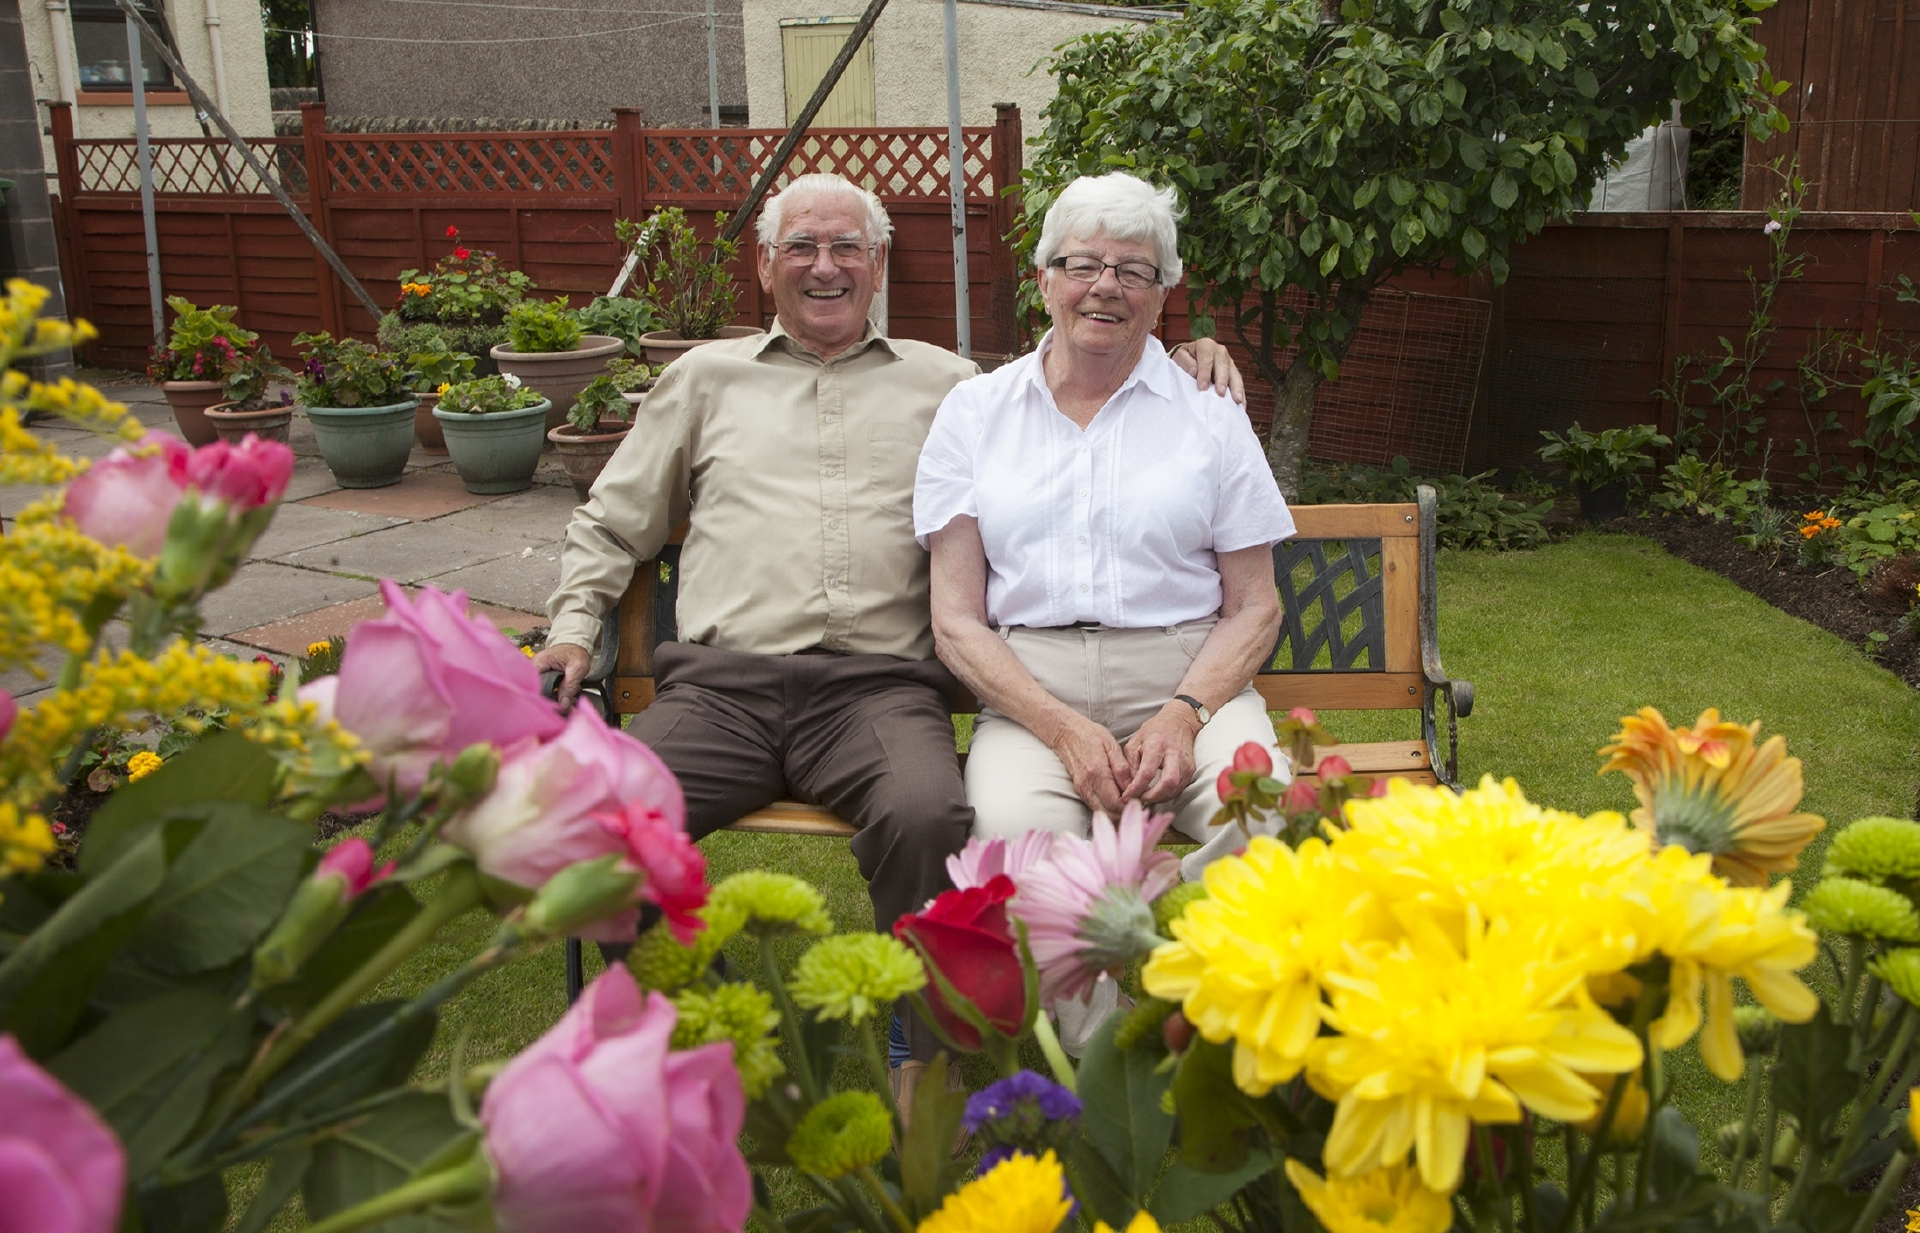 Chelsea Flower Show competition winner Marjorie Prophet and husband Neil pictured in their garden at home in Forfar.